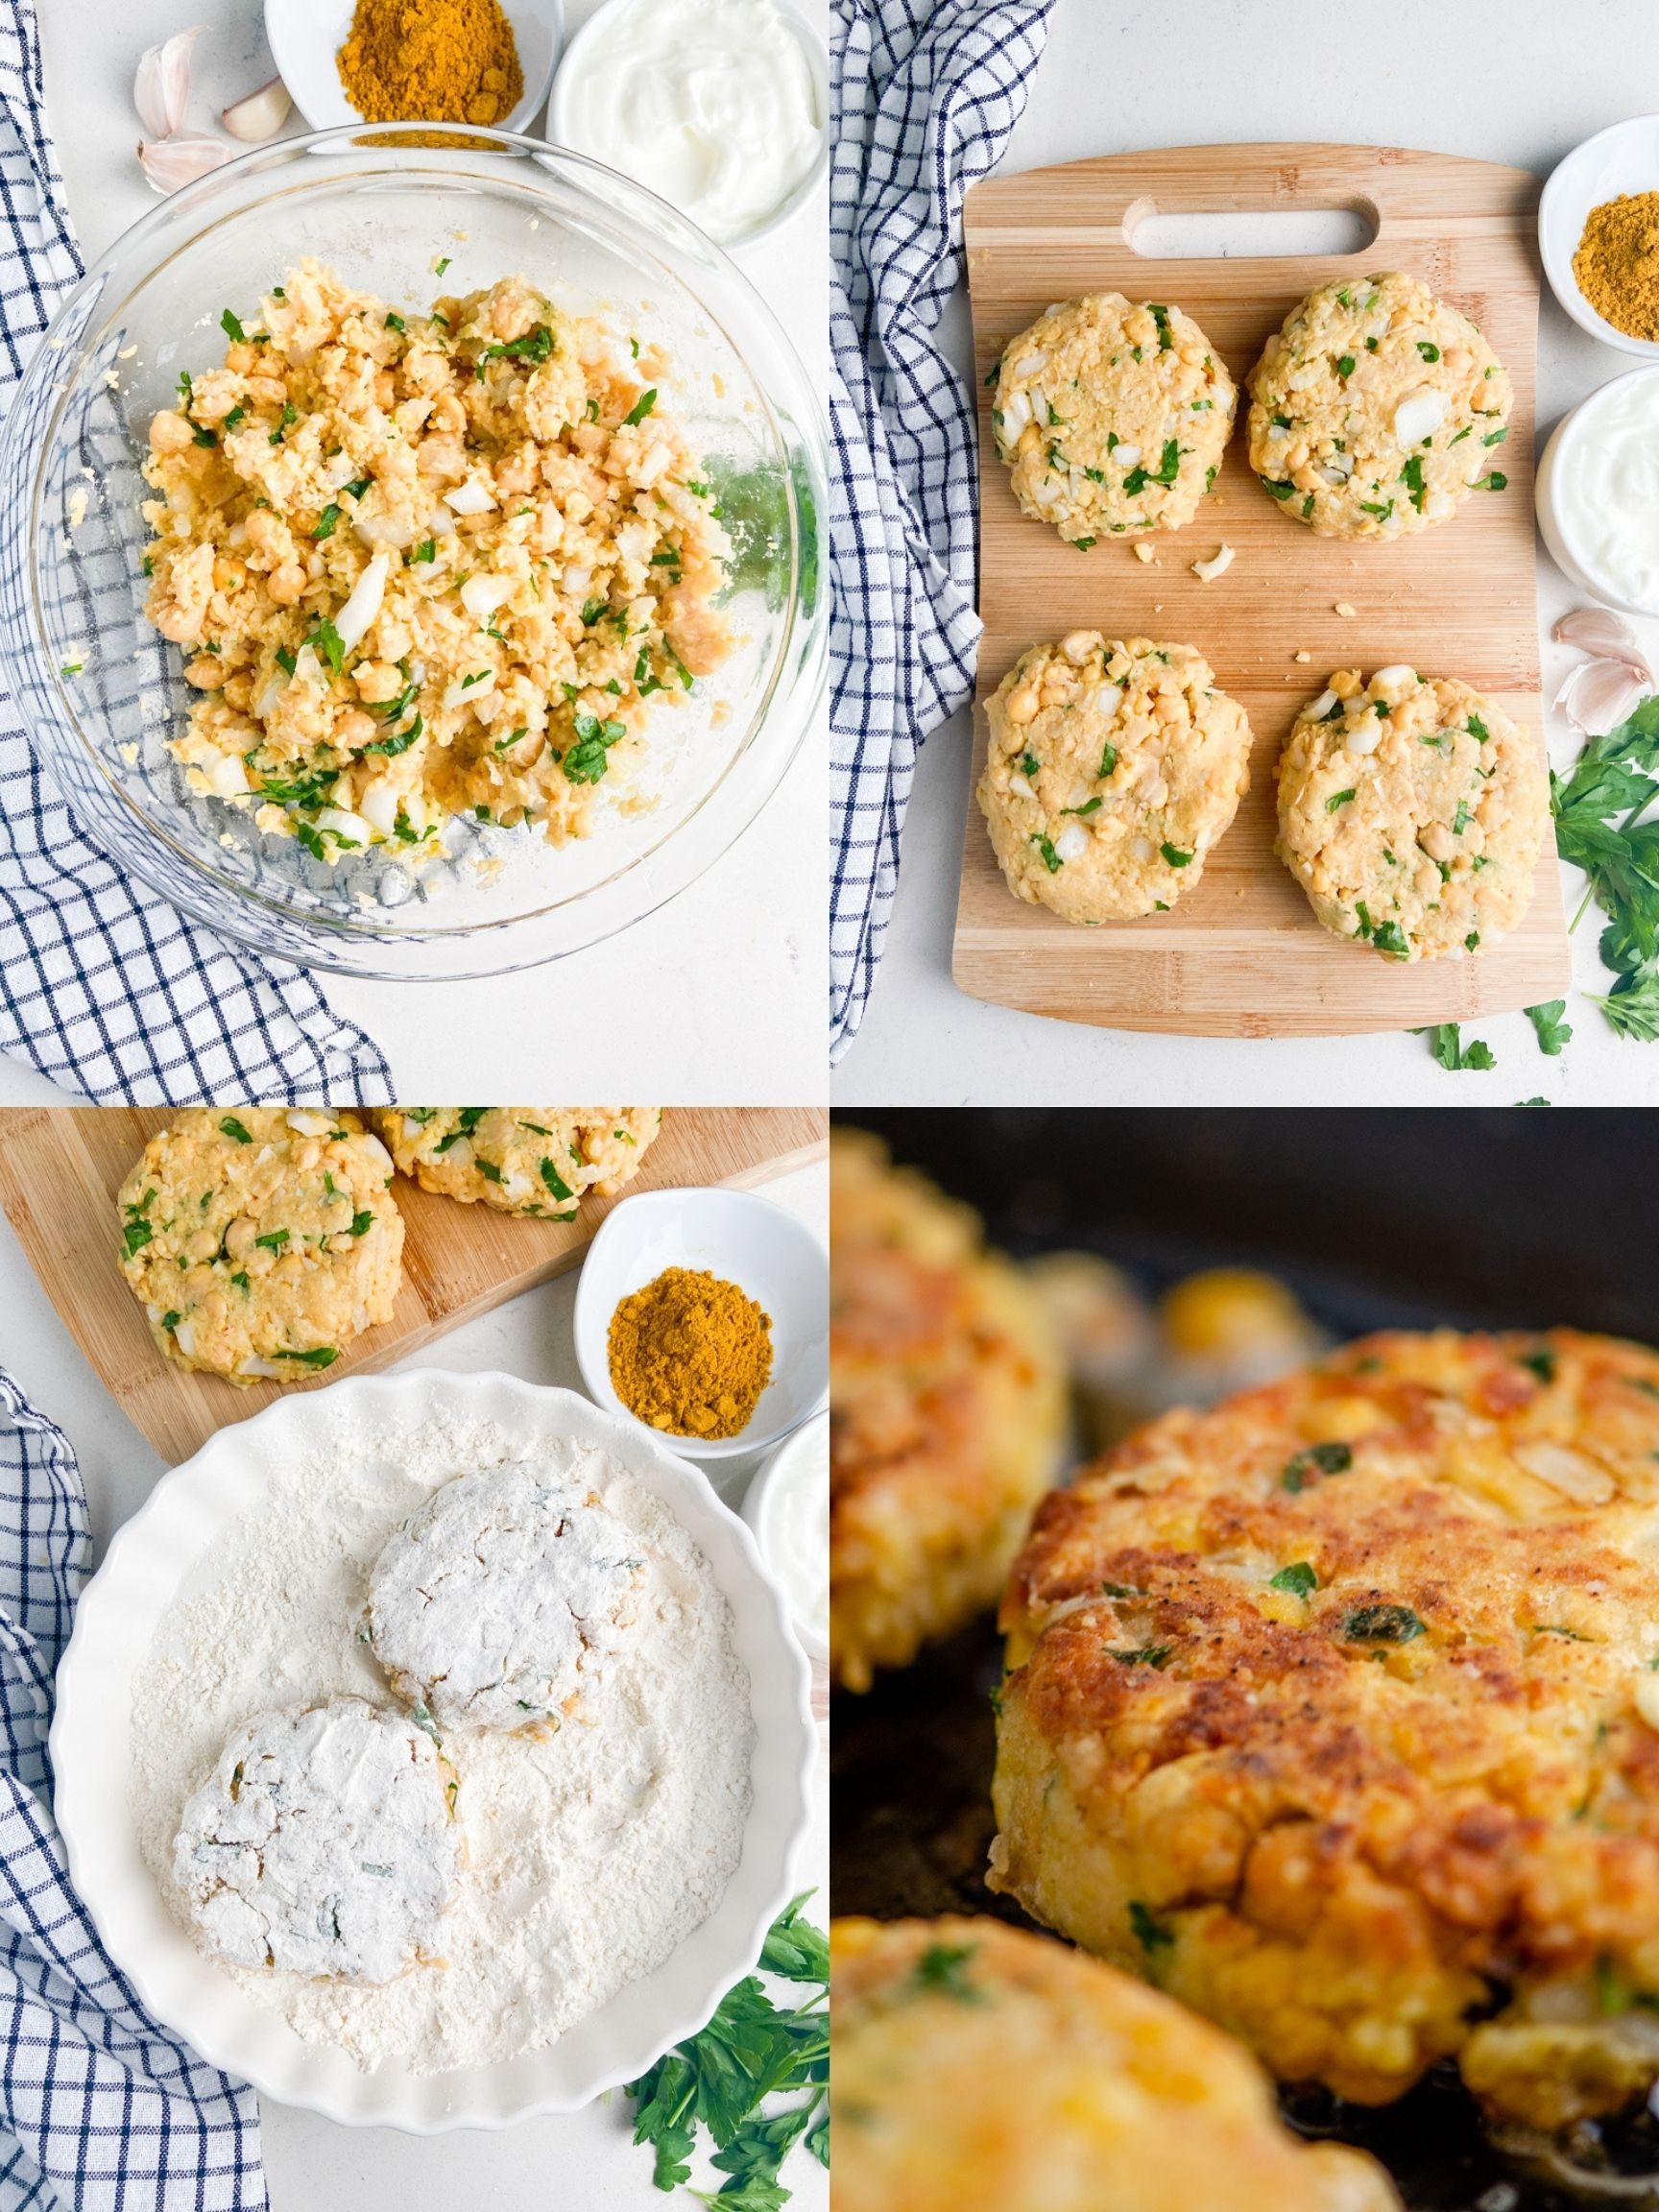 A collage of step by step photos showing how to make chickpea burgers.